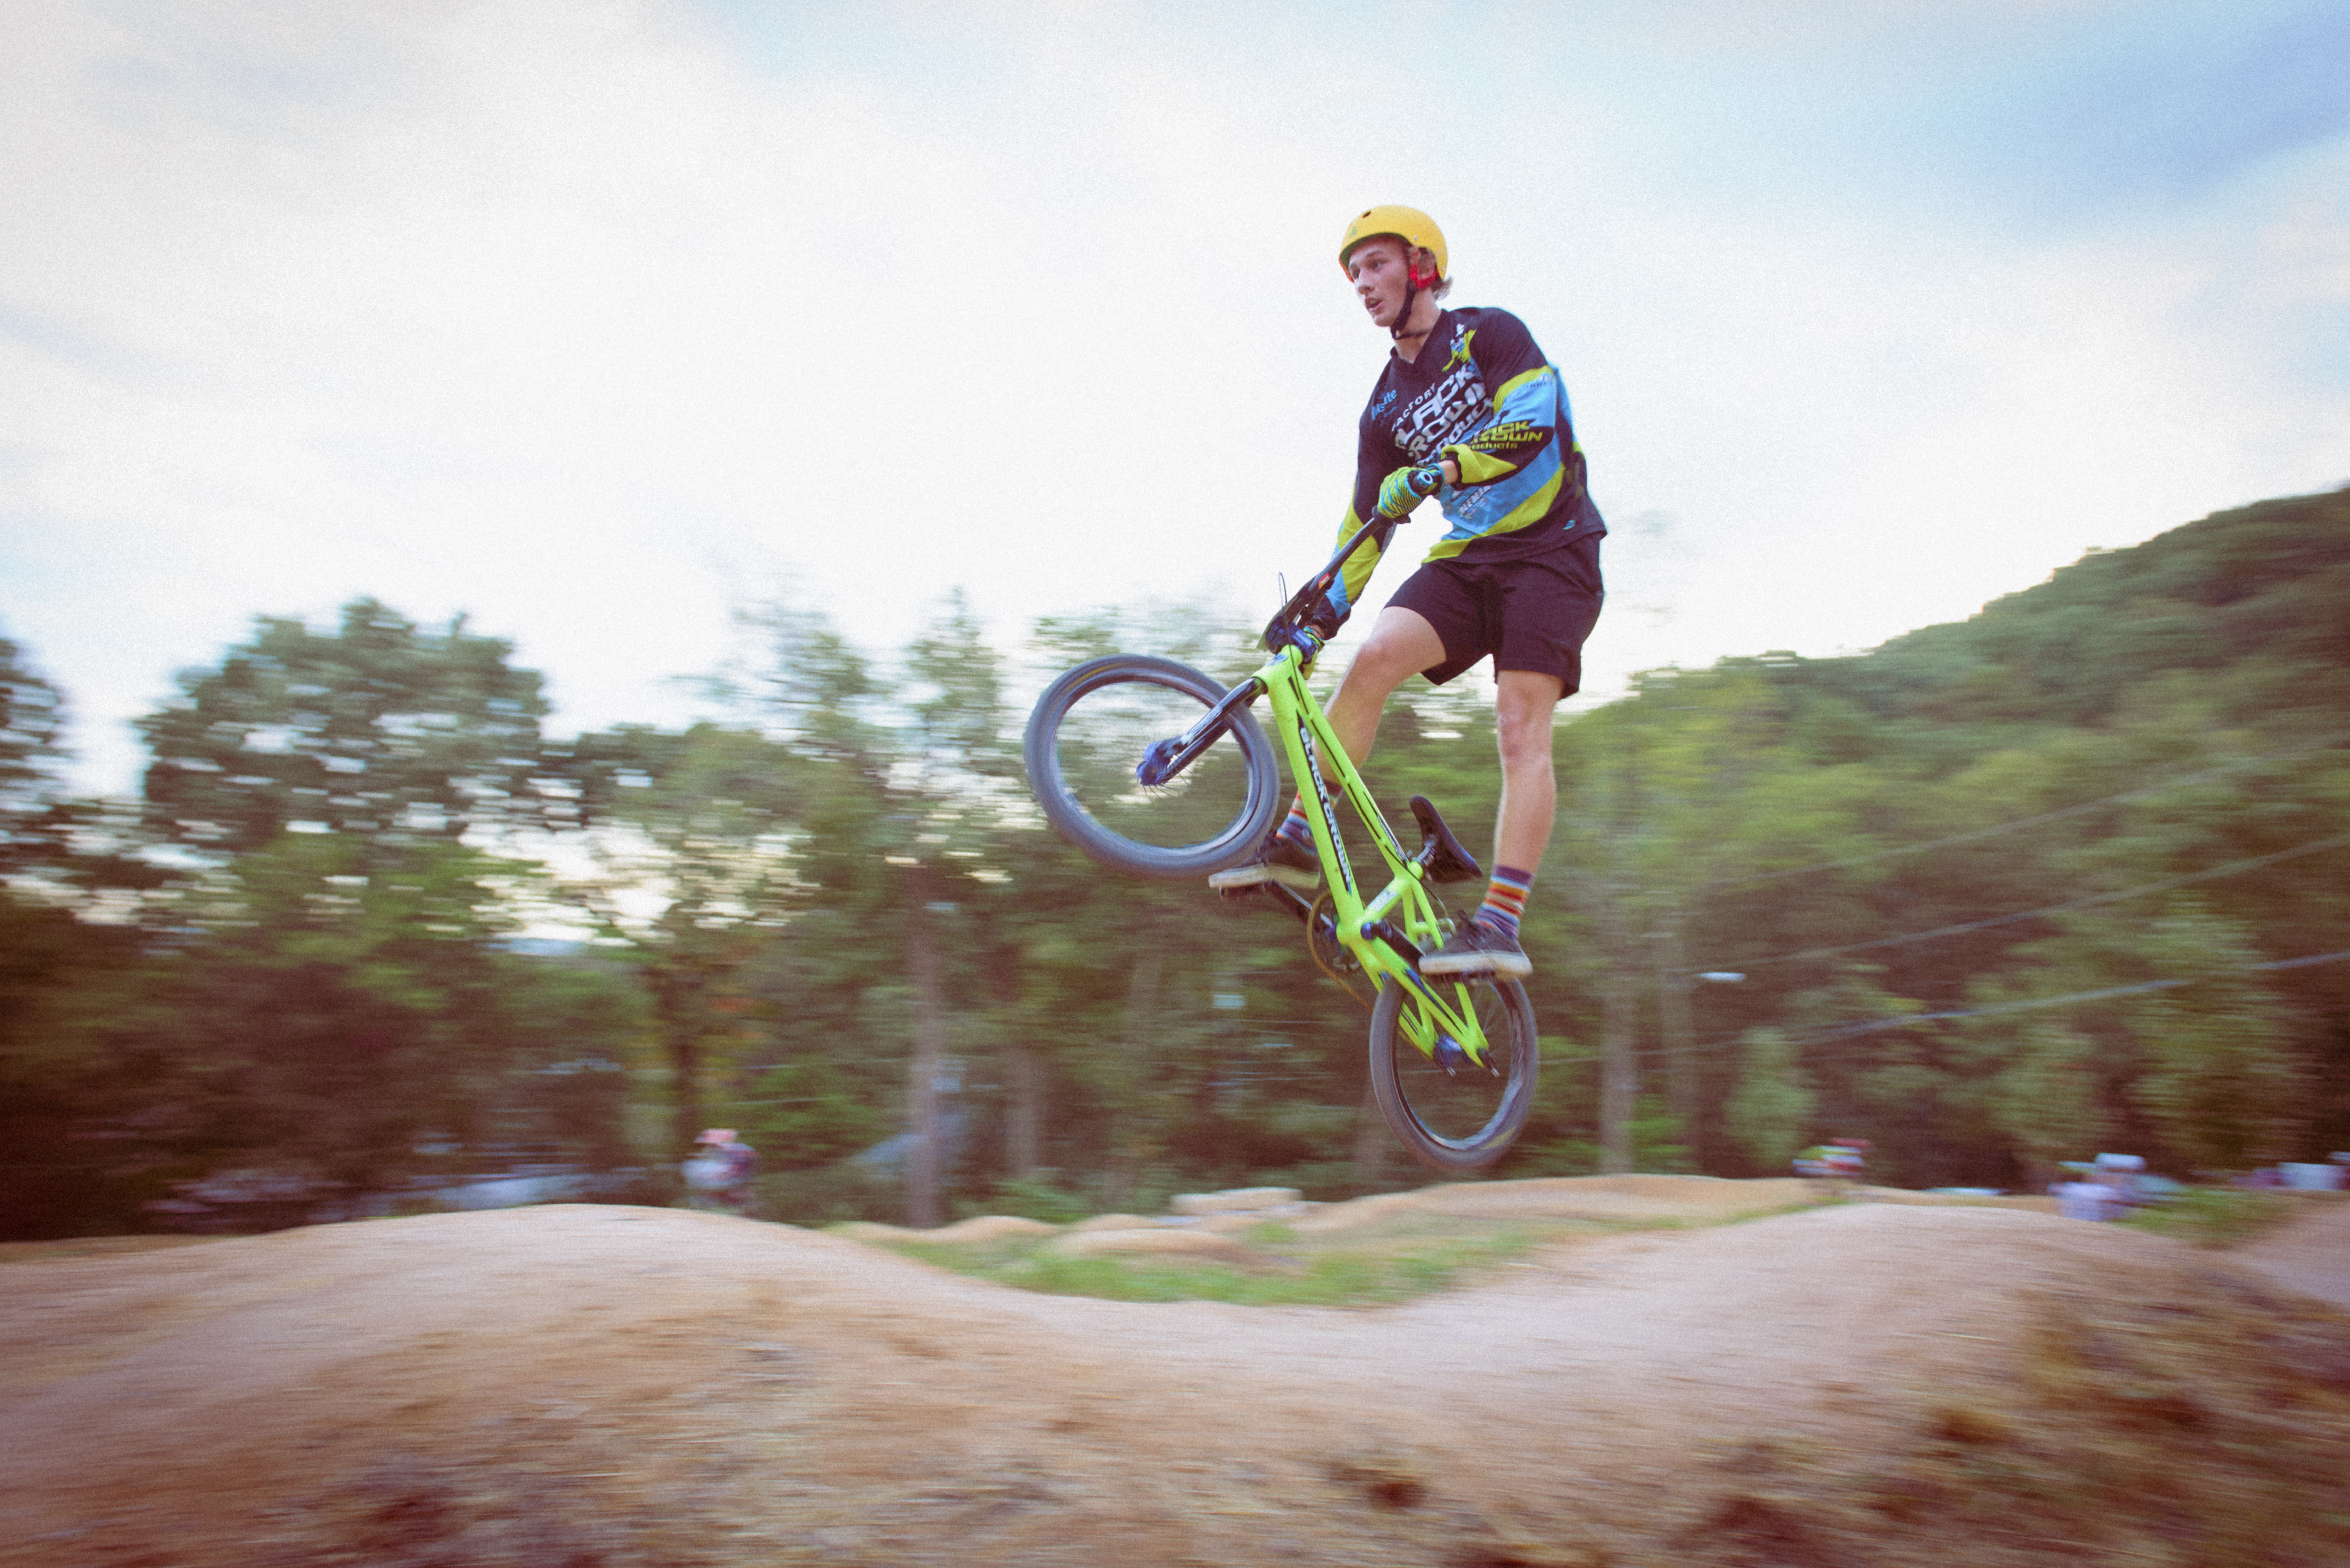 Pump Track Bicycle Athlete